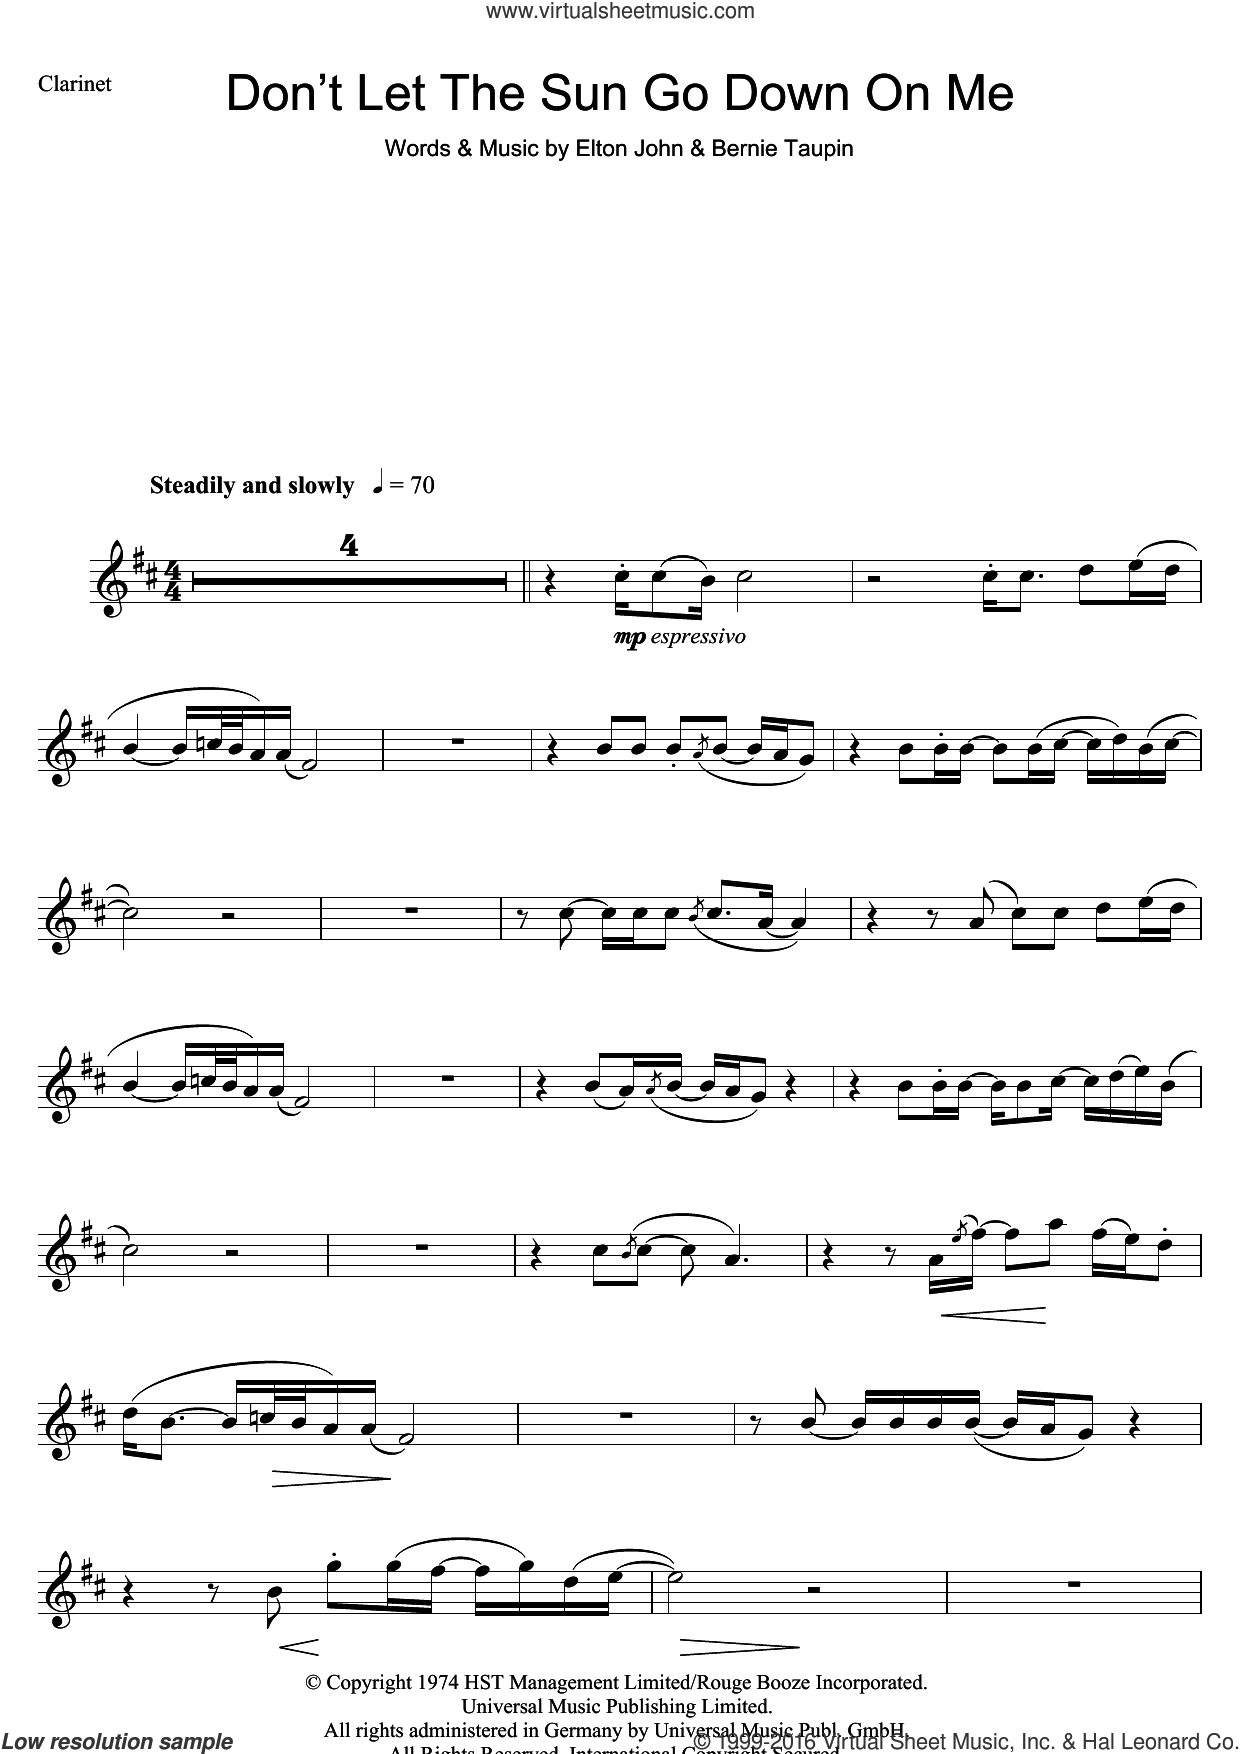 Don't Let The Sun Go Down On Me sheet music for clarinet solo by Elton John and Bernie Taupin. Score Image Preview.